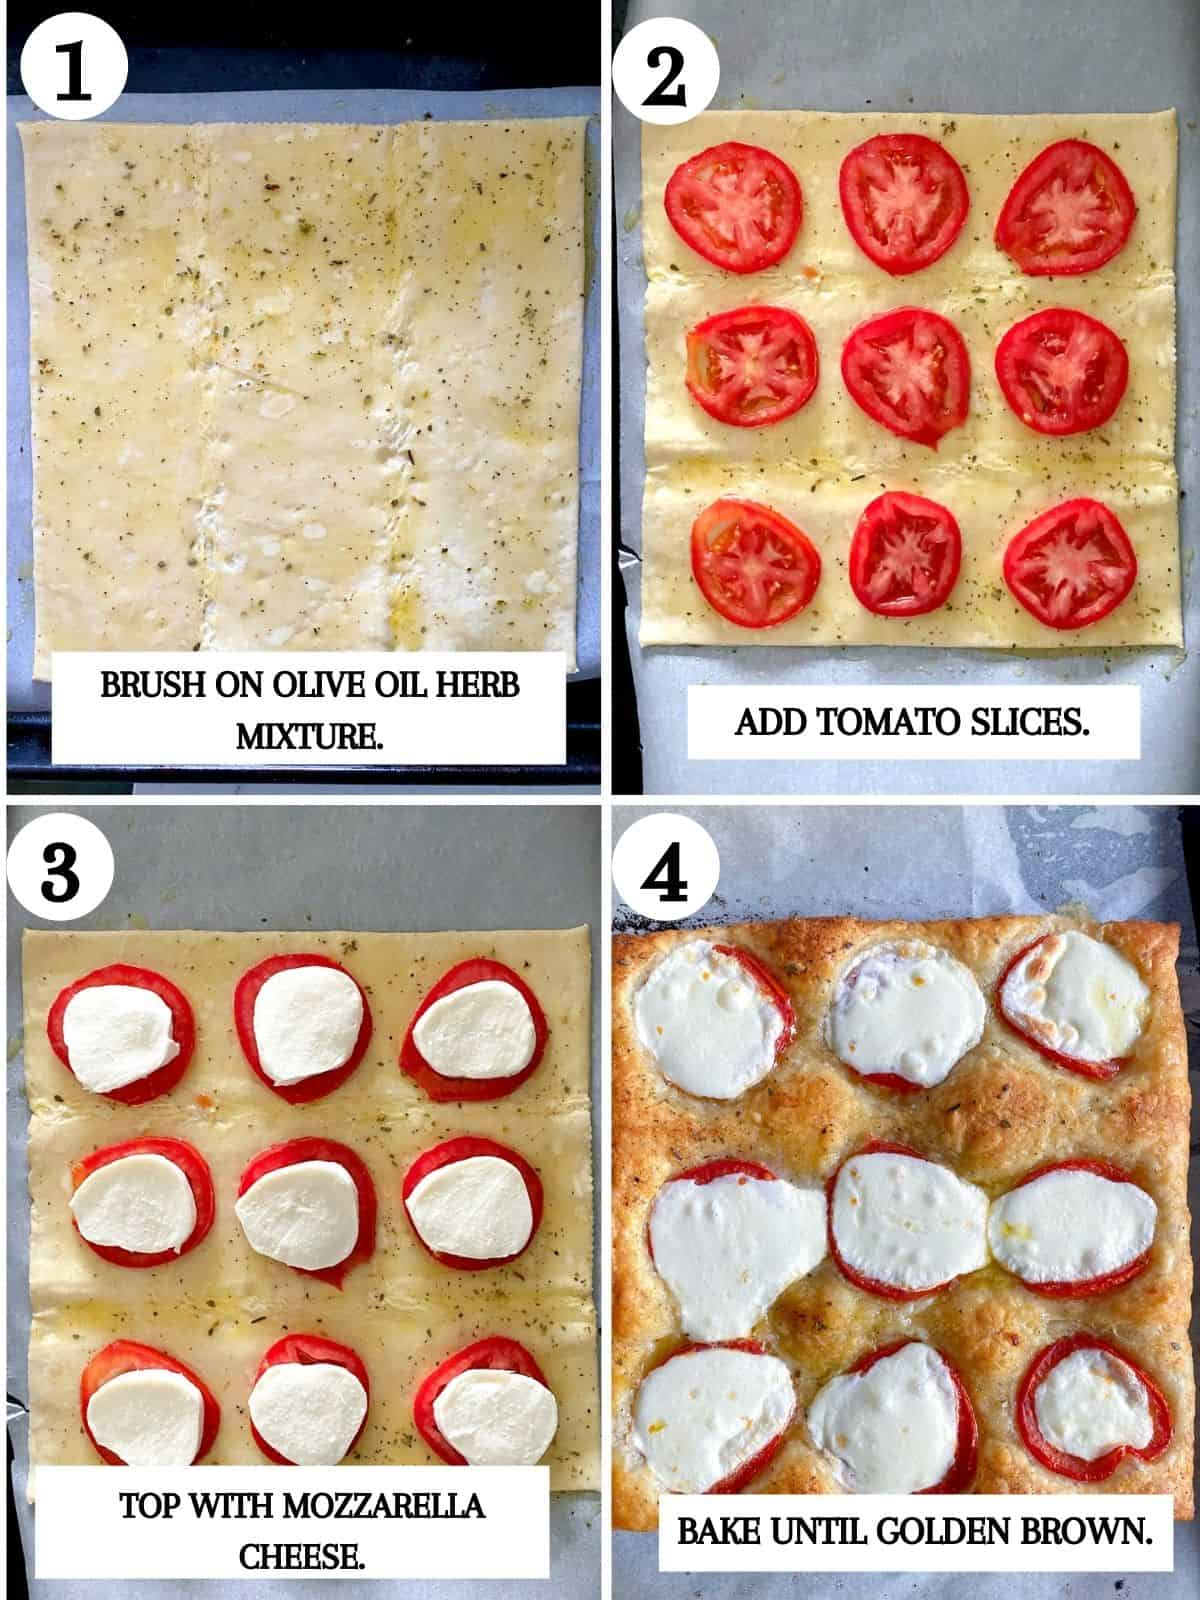 Steps to make puff pastry pizza.